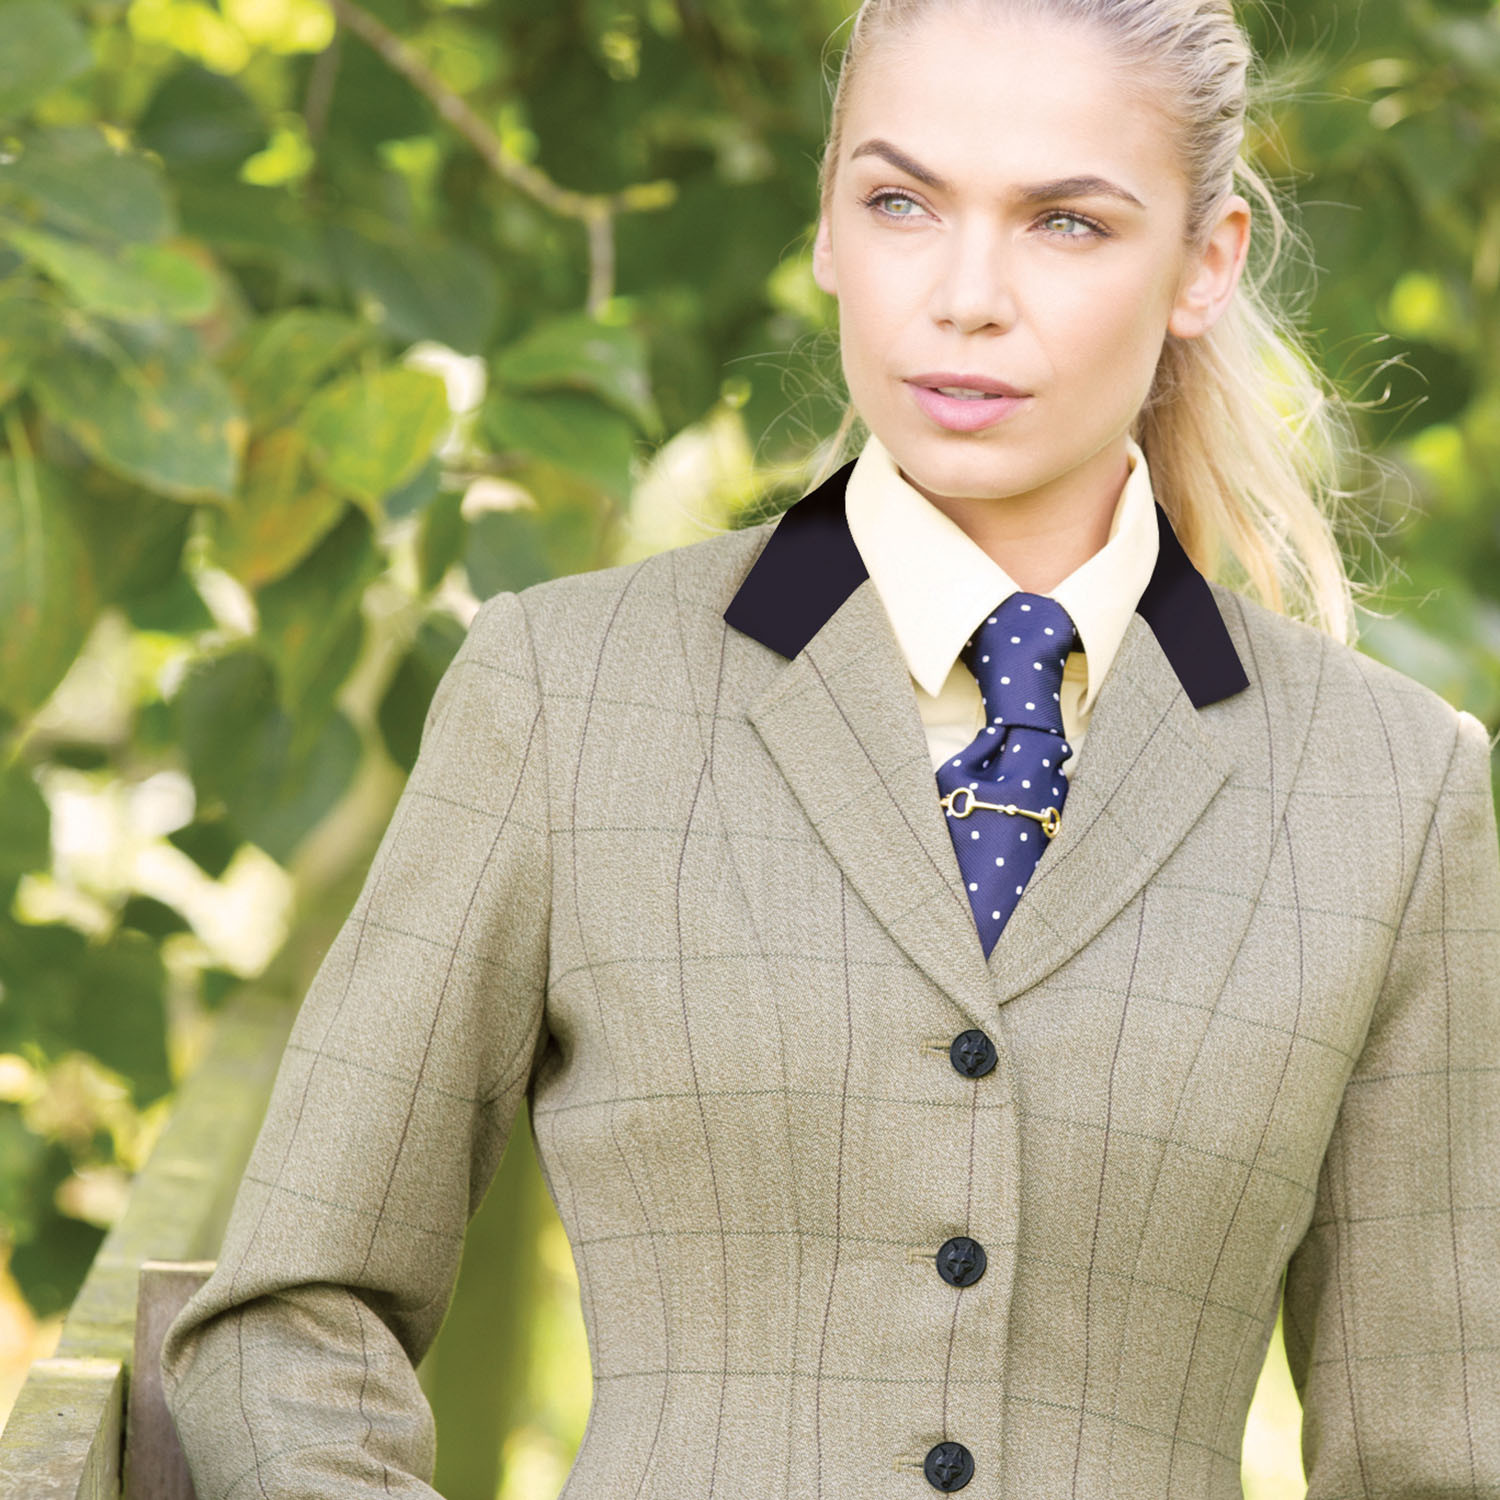 Deluxe Tweeds that will have you picture perfect this show season!